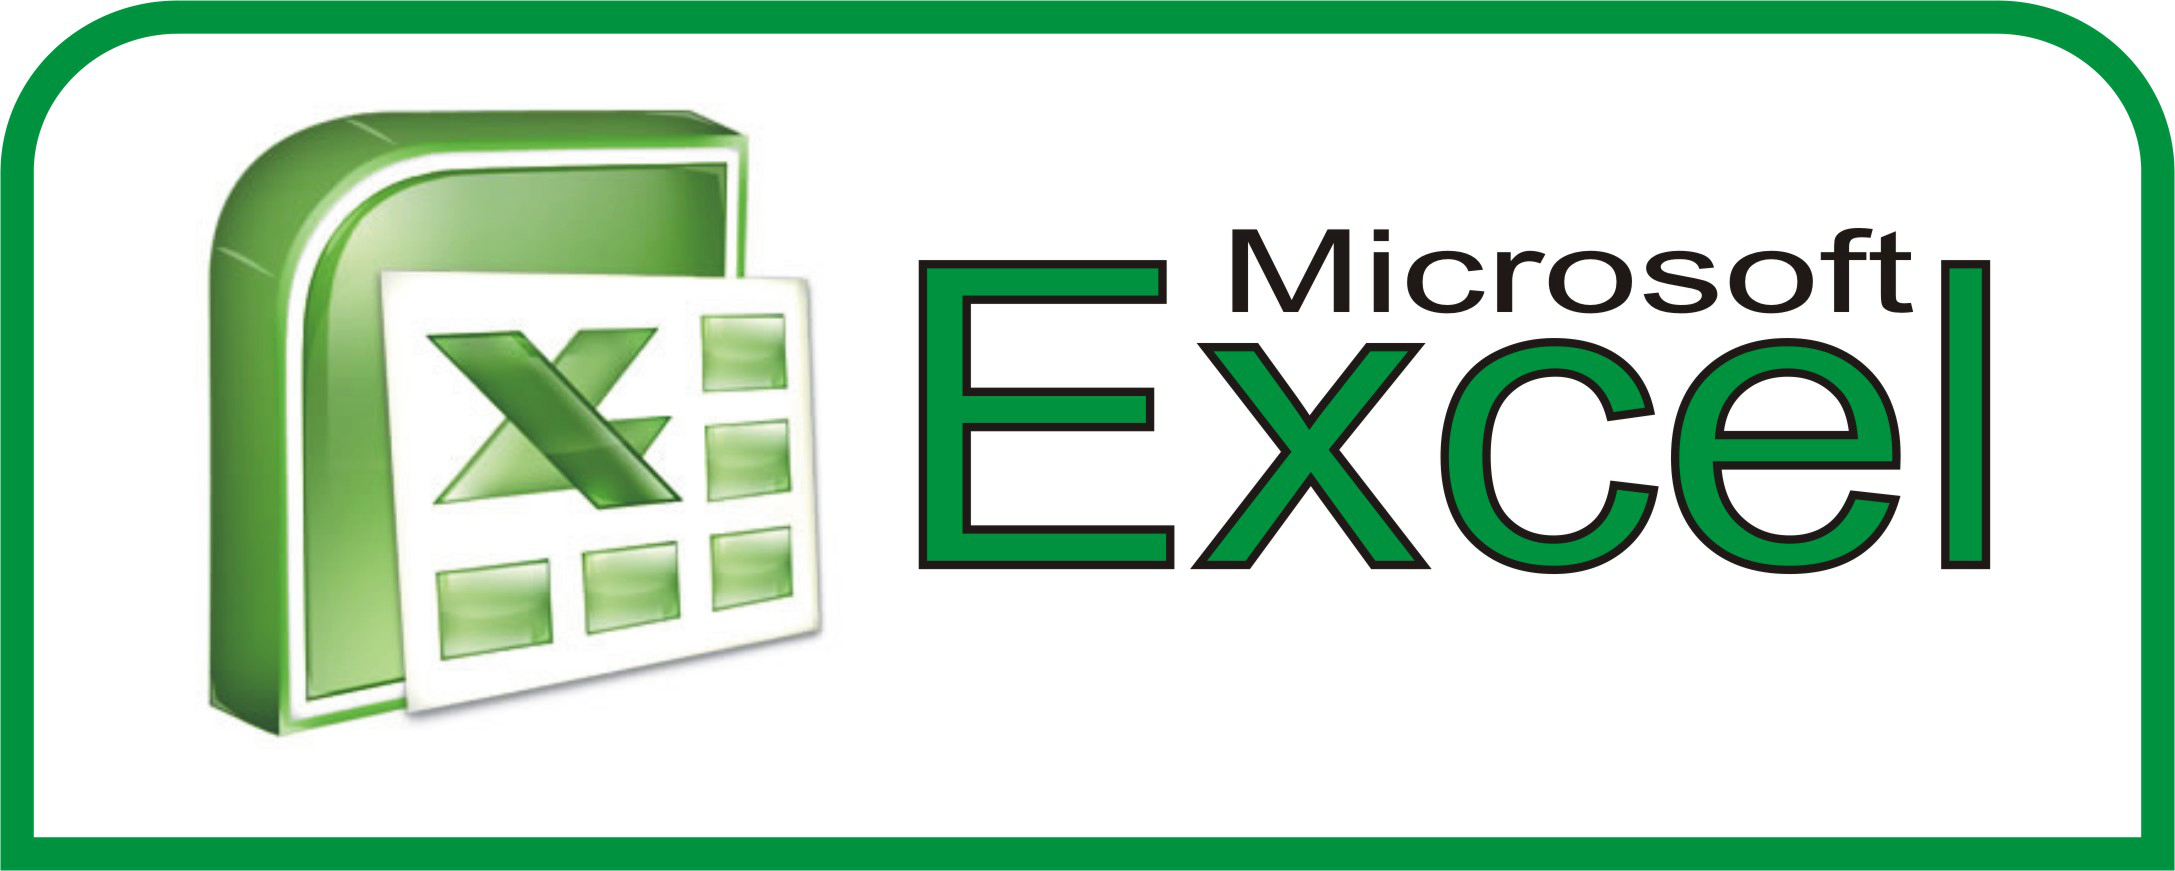 Ediblewildsus  Winsome  Excel Shortcuts You Probably Didnt Know About  Techdissected With Gorgeous Excel Dashboard Design Besides Excel Creating A Drop Down List Furthermore Excel Make Histogram With Divine Merge Excel Worksheets Into One Also Debt Amortization Schedule Excel In Addition Excel Center Friendswood And Data Analysis Pack Excel Mac As Well As Regression Model In Excel Additionally Create Excel Graph From Techdissectedcom With Ediblewildsus  Gorgeous  Excel Shortcuts You Probably Didnt Know About  Techdissected With Divine Excel Dashboard Design Besides Excel Creating A Drop Down List Furthermore Excel Make Histogram And Winsome Merge Excel Worksheets Into One Also Debt Amortization Schedule Excel In Addition Excel Center Friendswood From Techdissectedcom